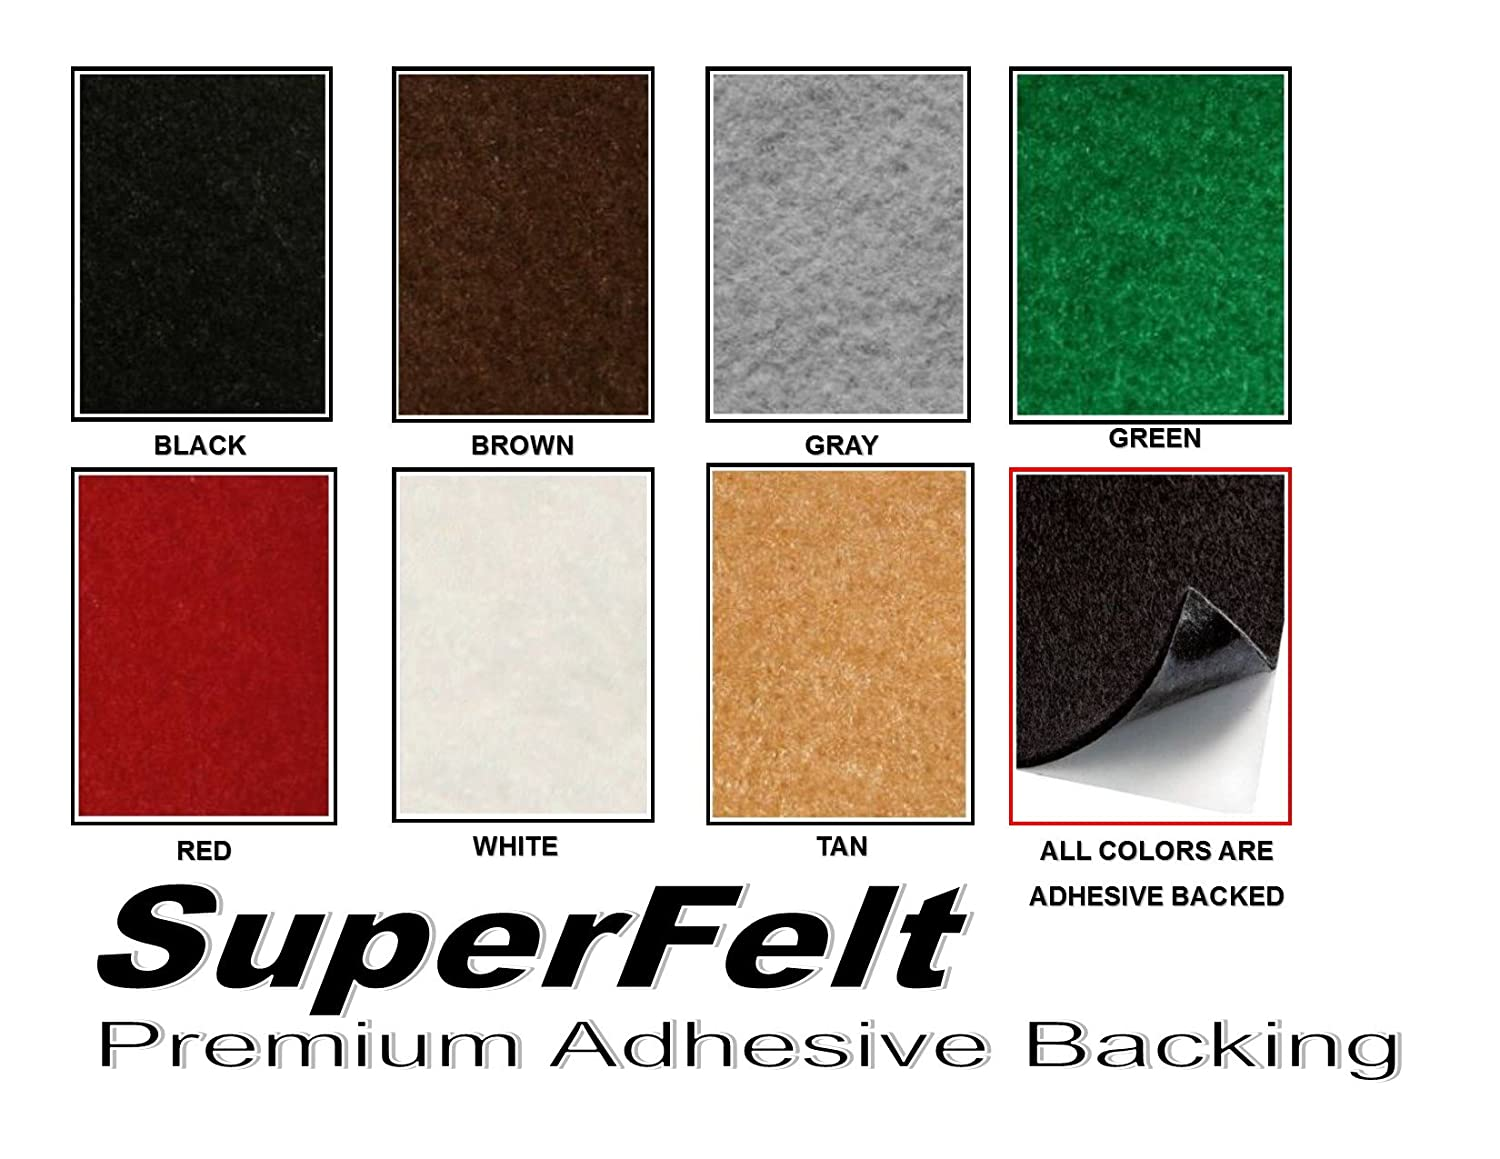 12' WIDE x 36'LONG ROLL SuperFelt - 1/16' THICK SELF ADHESIVE PROTECTIVE FELT - No Scratch - Premium Acrylic - Peel-N-Stick - Available in Multiple Colors (GREEN)